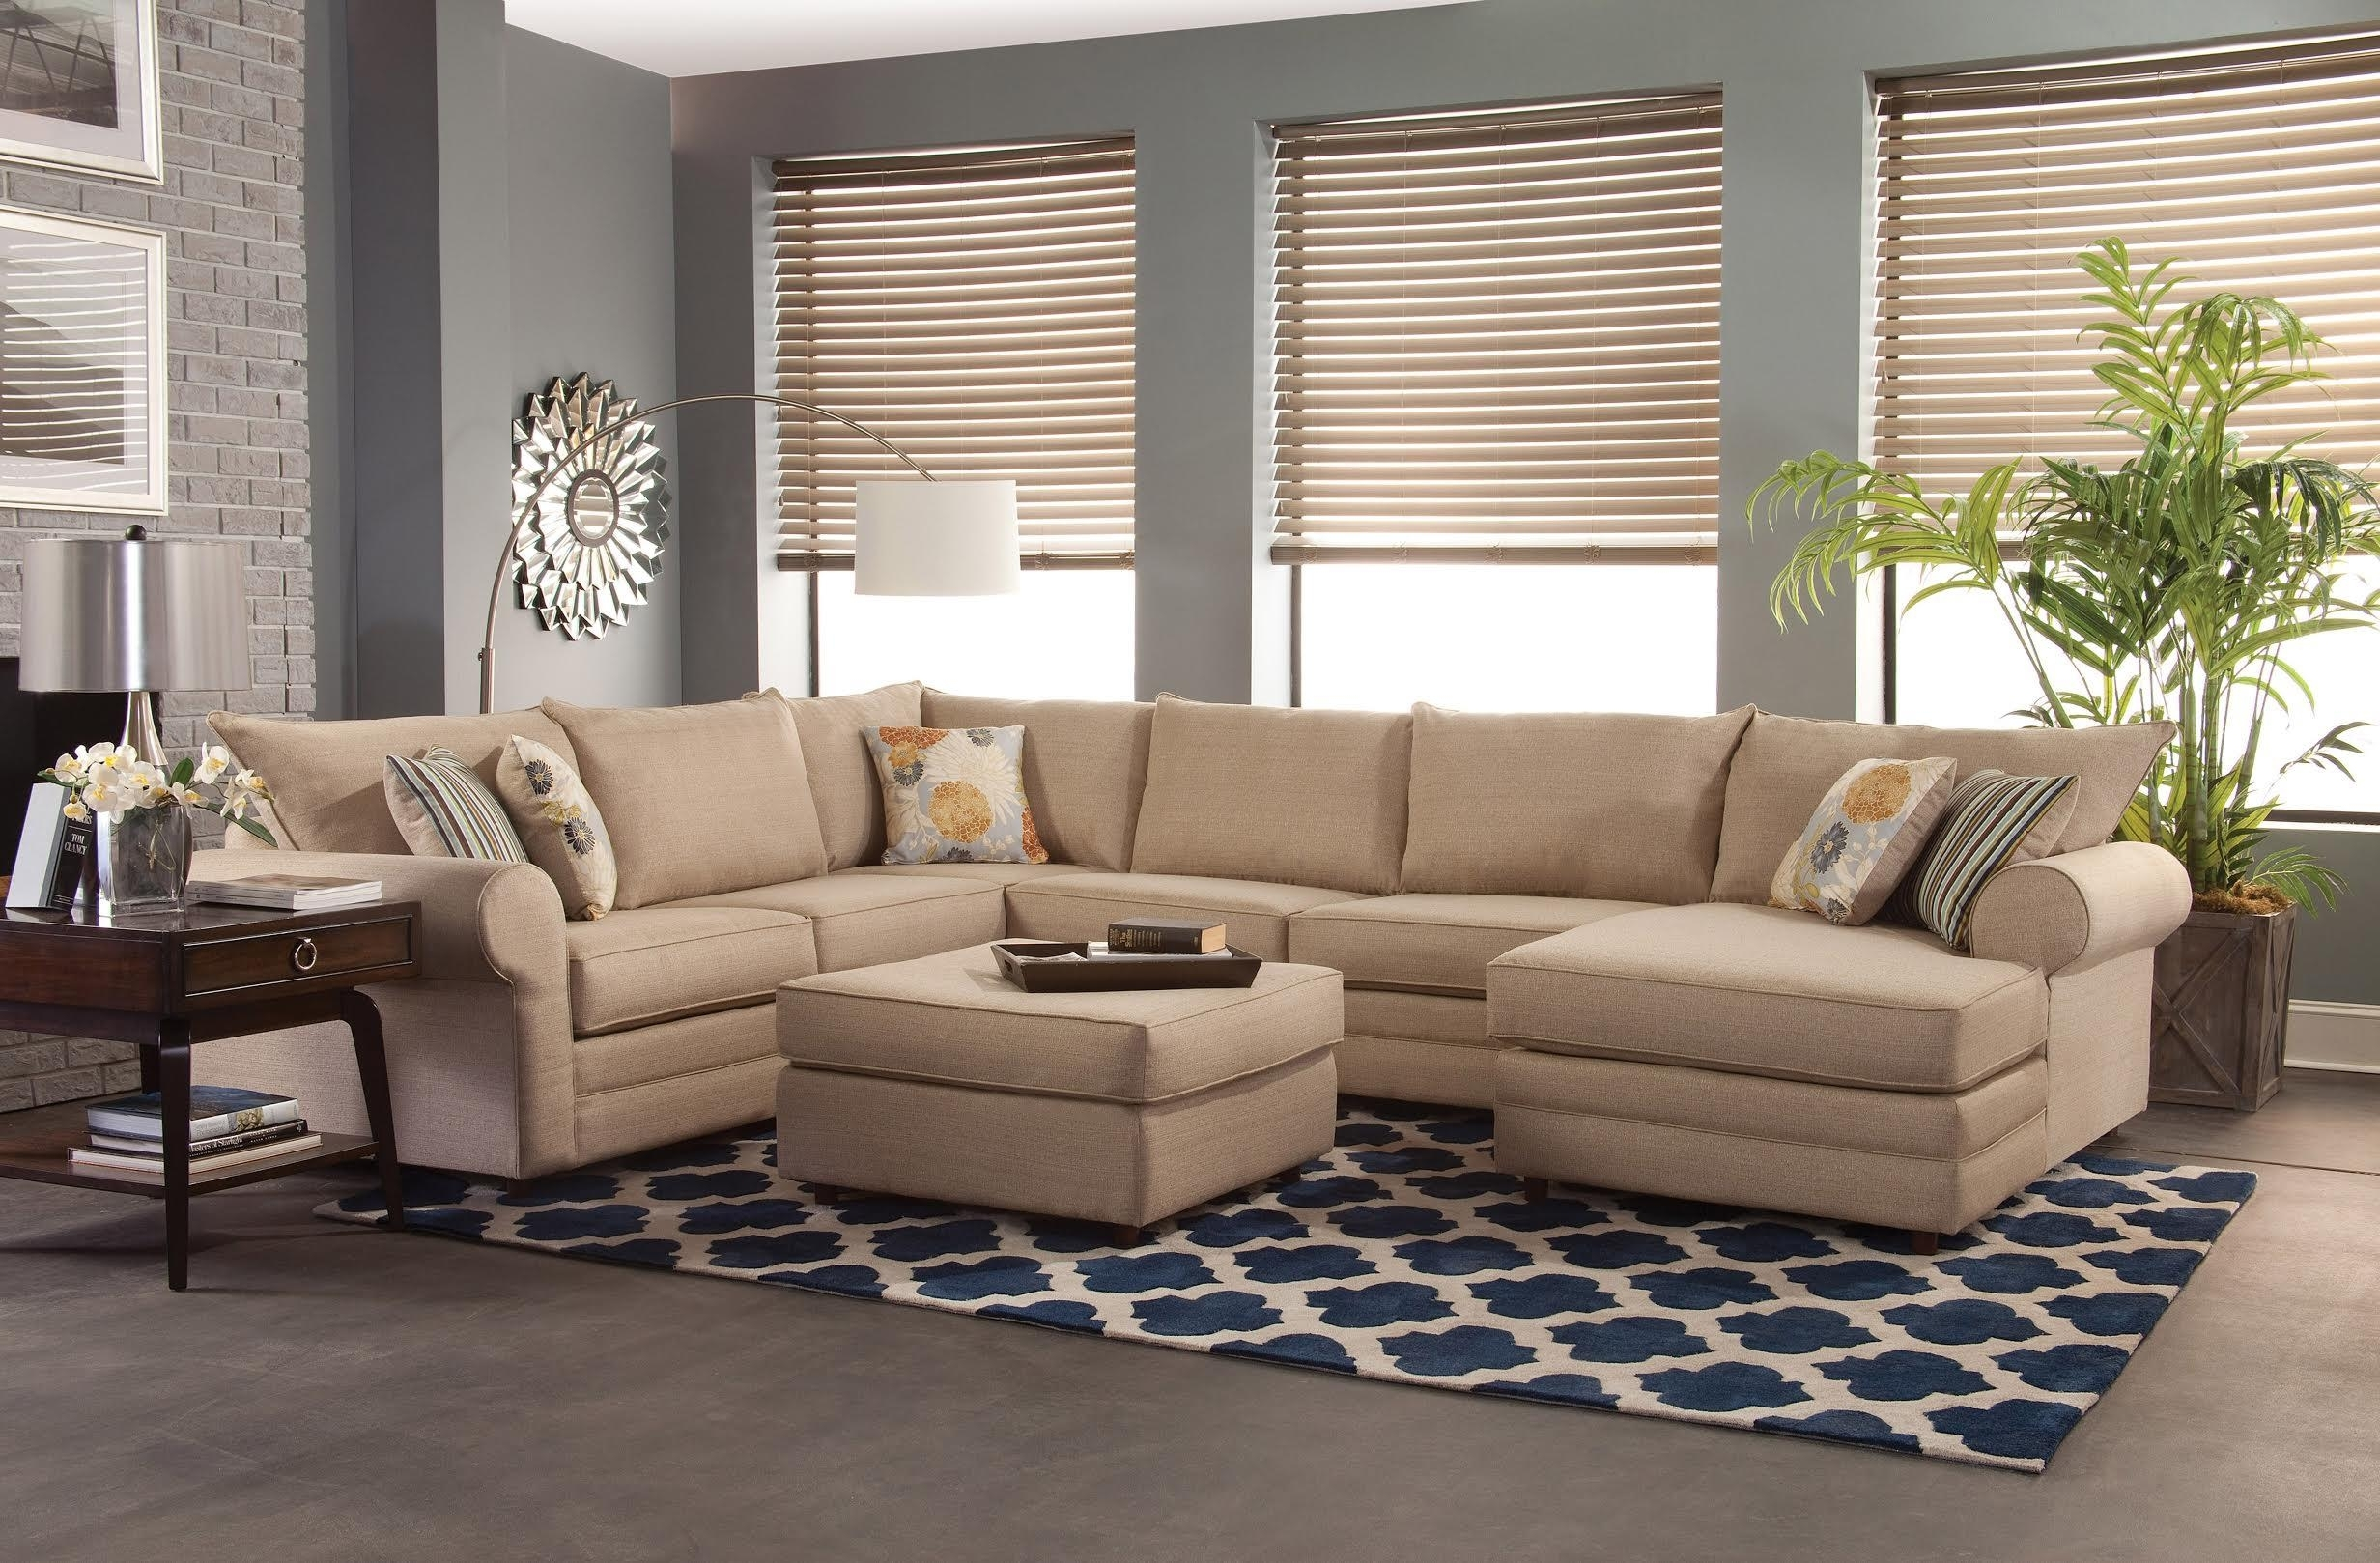 Belfort Essentials Monticello Casual Sectional Sofa | Belfort With Regard To Sectional Sofas (View 10 of 10)